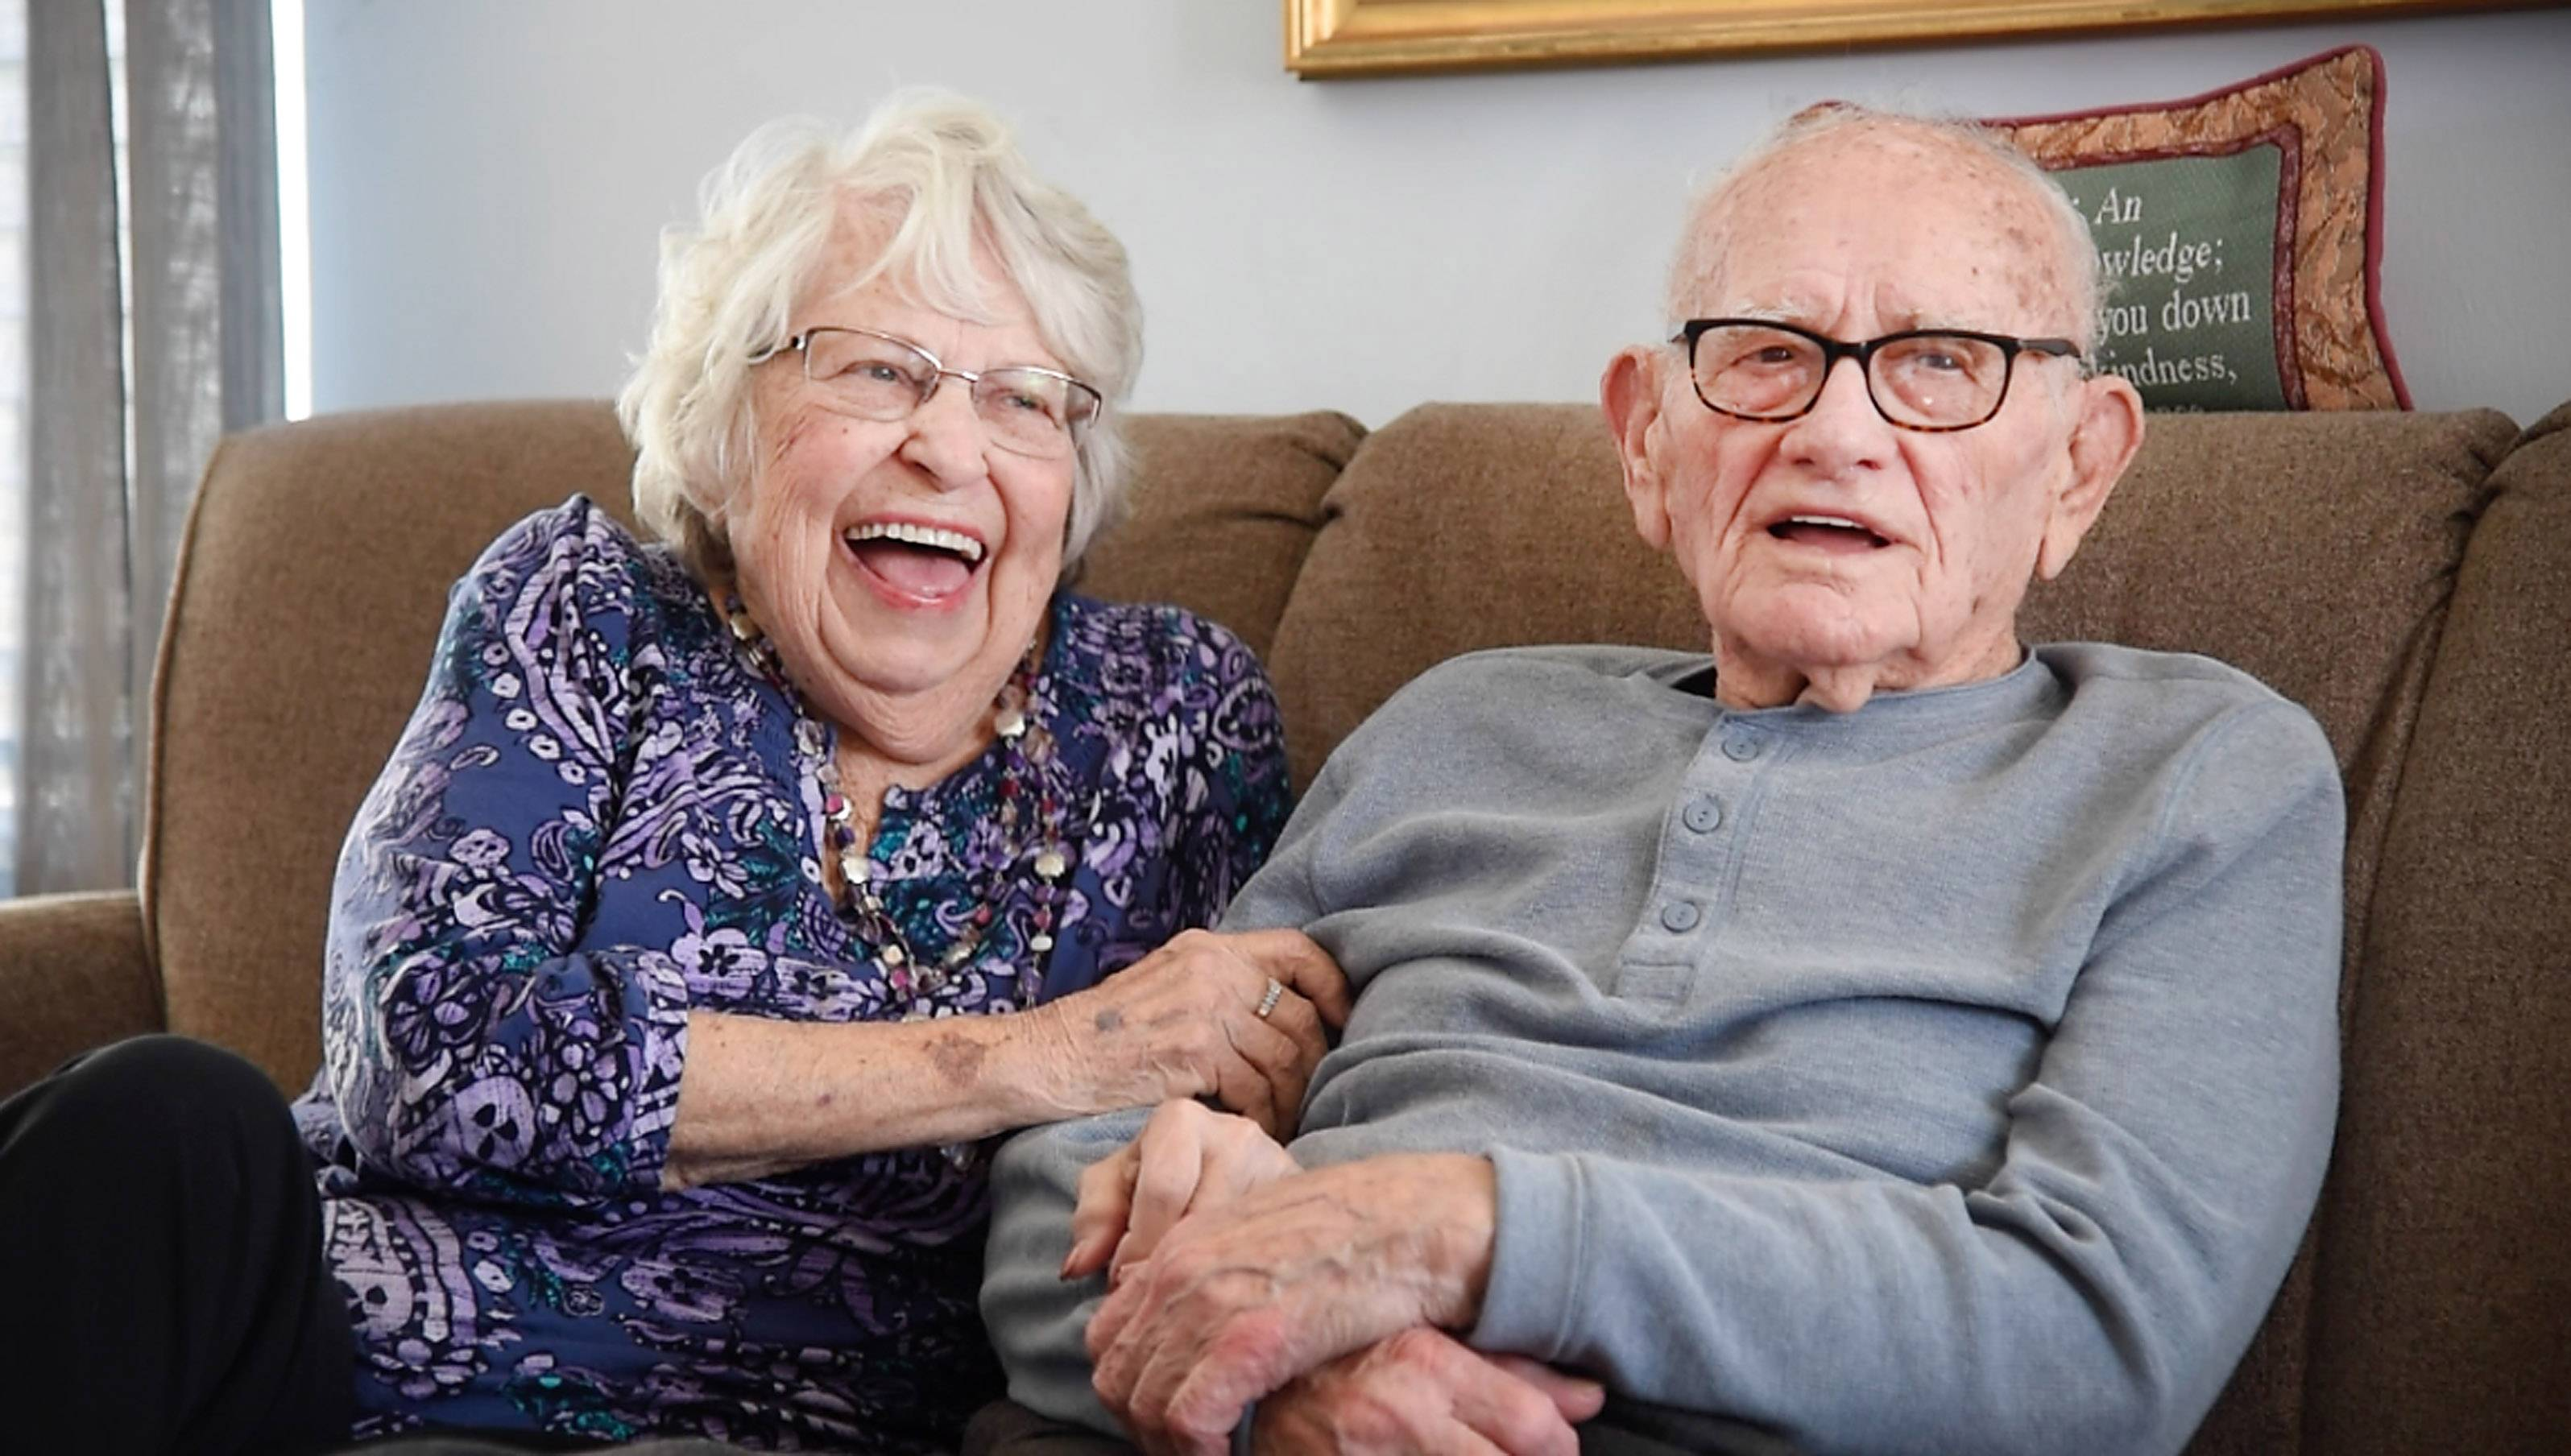 Titanic, war, faith and fun all part of 70-year marriage